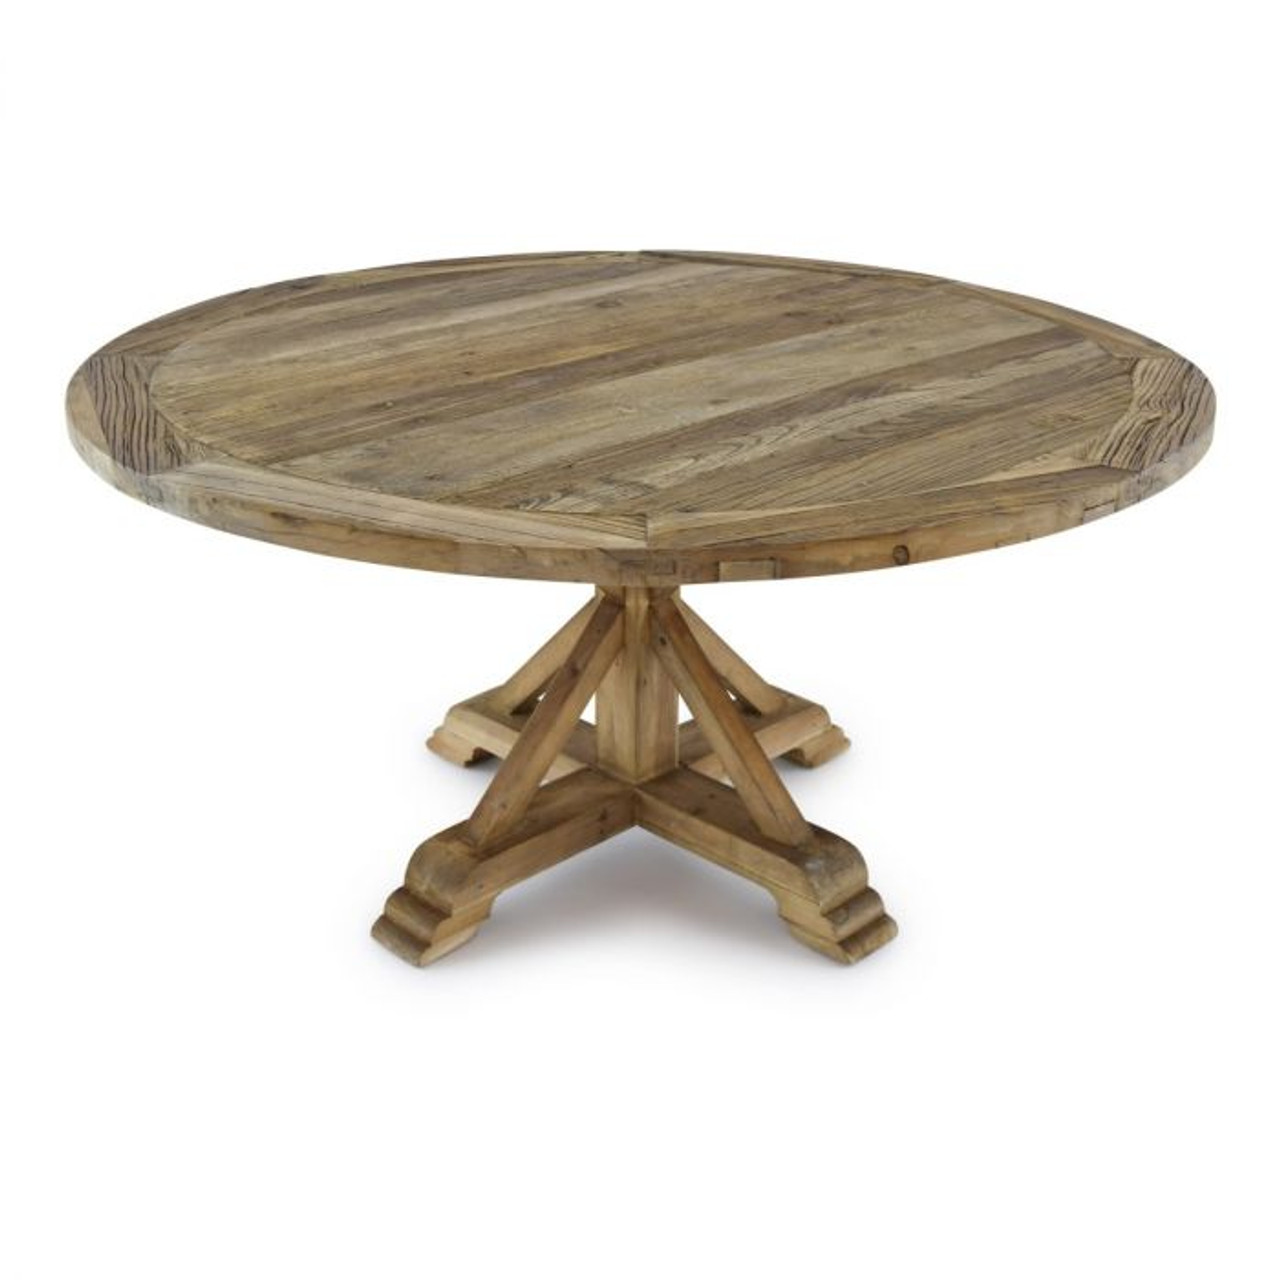 60inch Round Table.Farmhouse Rustic 60 Inch Round Table